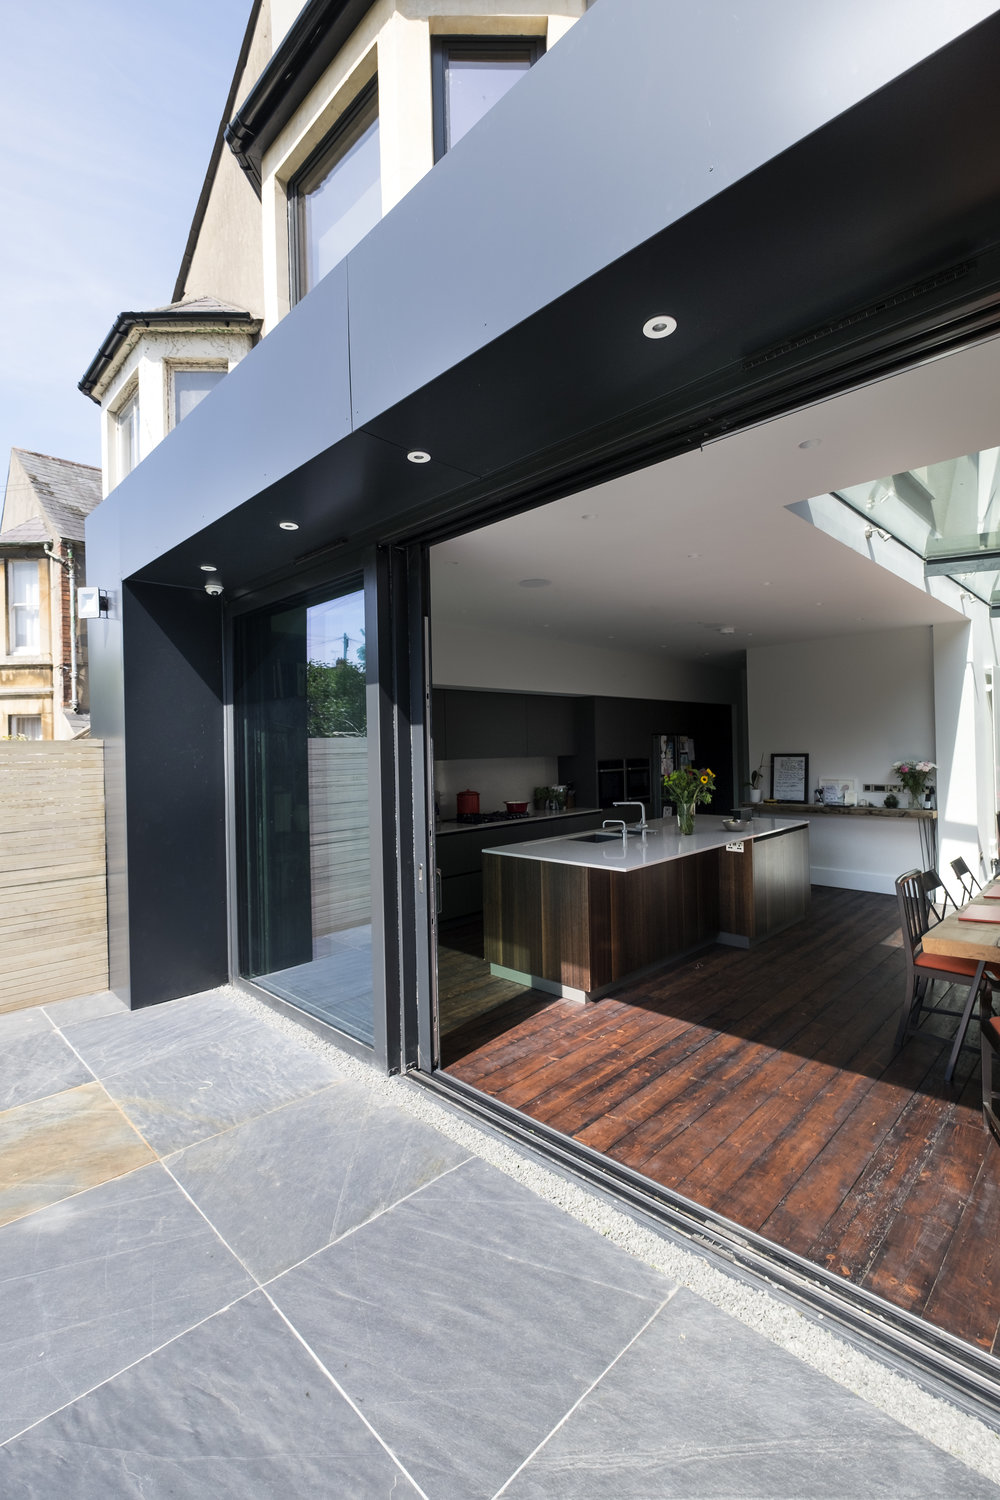 The dark grey Aluminium cladding, with full height lift and slide solar control glass doors, reclaimed stained timber floorboards and Welsh slate tiles, blend beautifully the outside with the inside ; the old and the new.  The existing Victorian architectural charm is retained with colours and textures of its time, whilst the additions unashamedly reflect the way we build today.